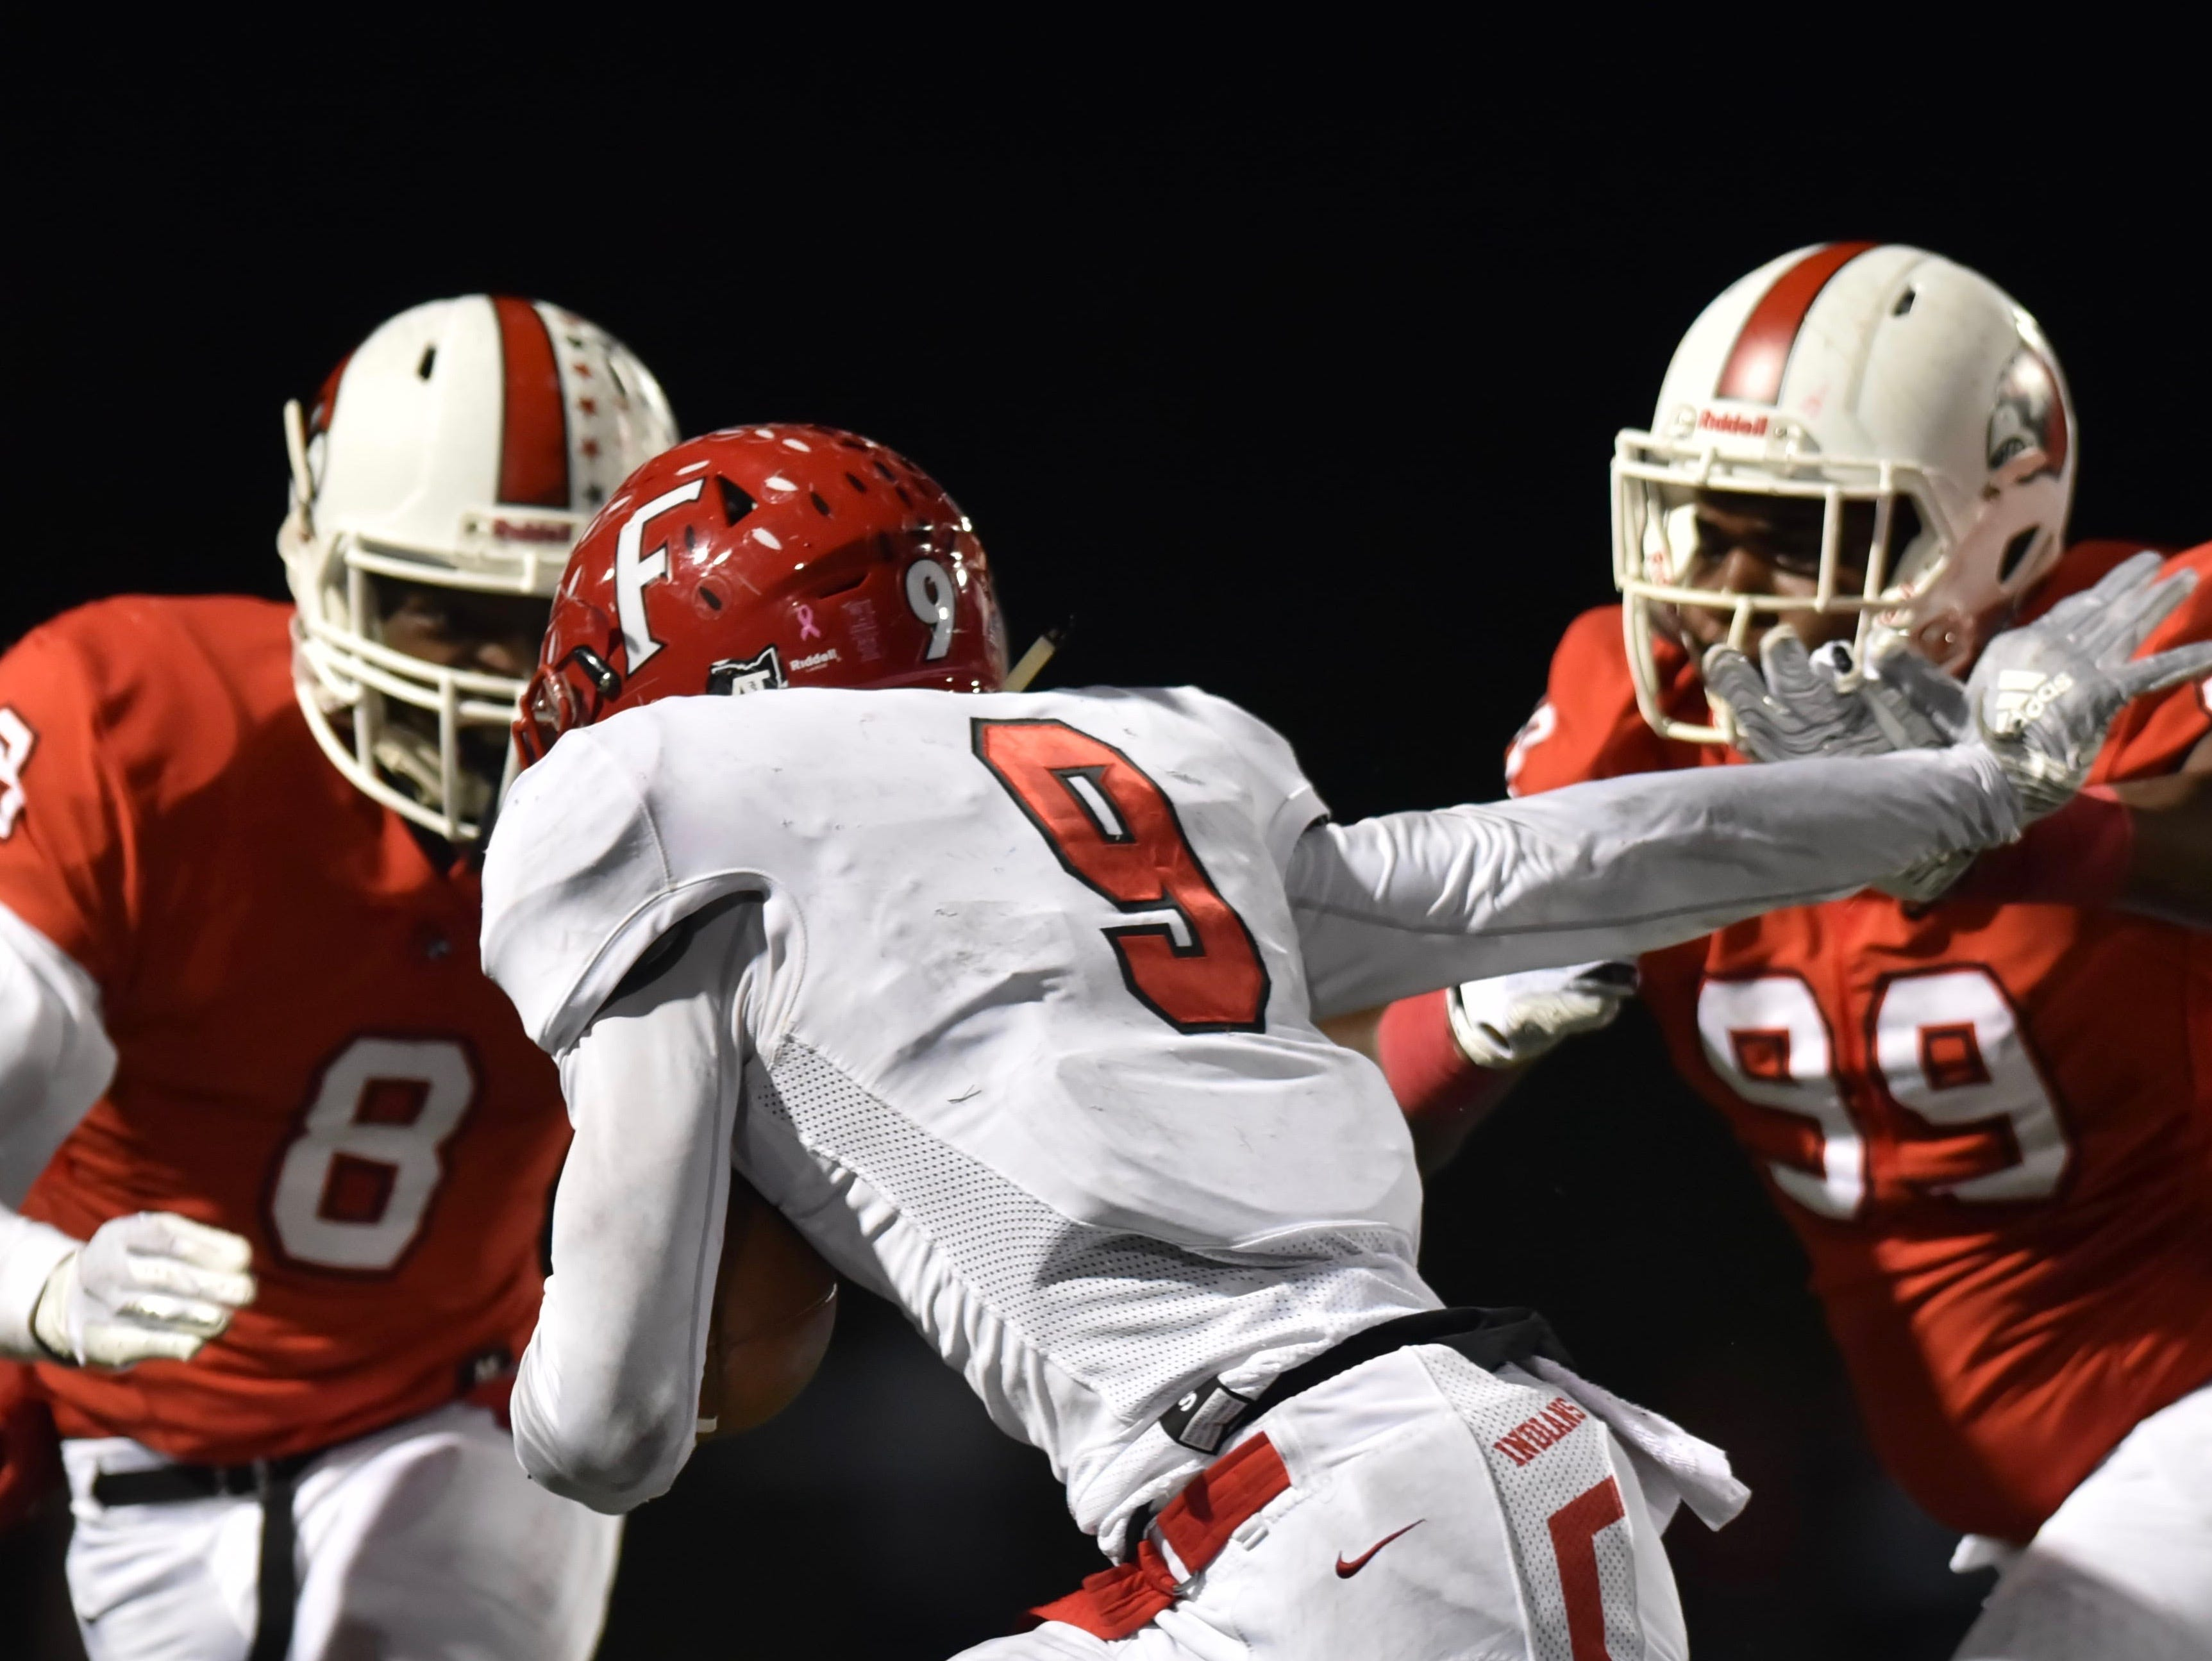 Fairfield's Jutahn Mcclain tries to elude the Cardinals' Jakari Patterson and Eric Phillips Friday, Oct. 19, 2018 at Colerain High School